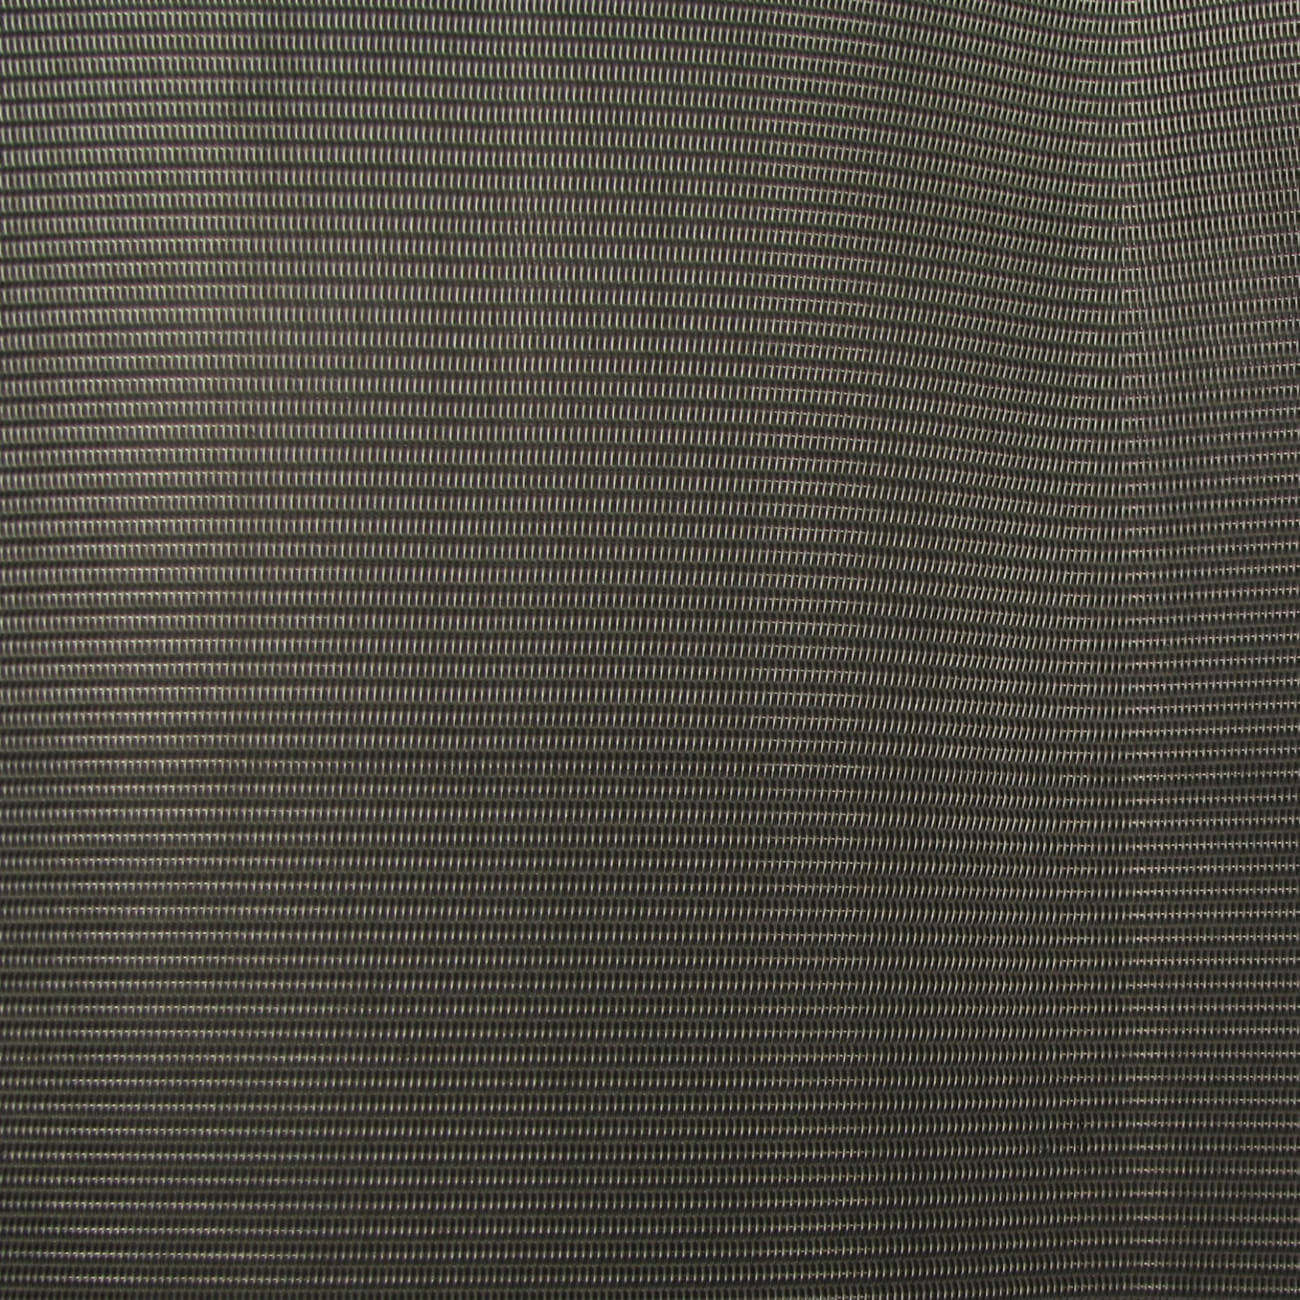 MH1207 Fine Woven Wire Mesh Per Metre: Openings